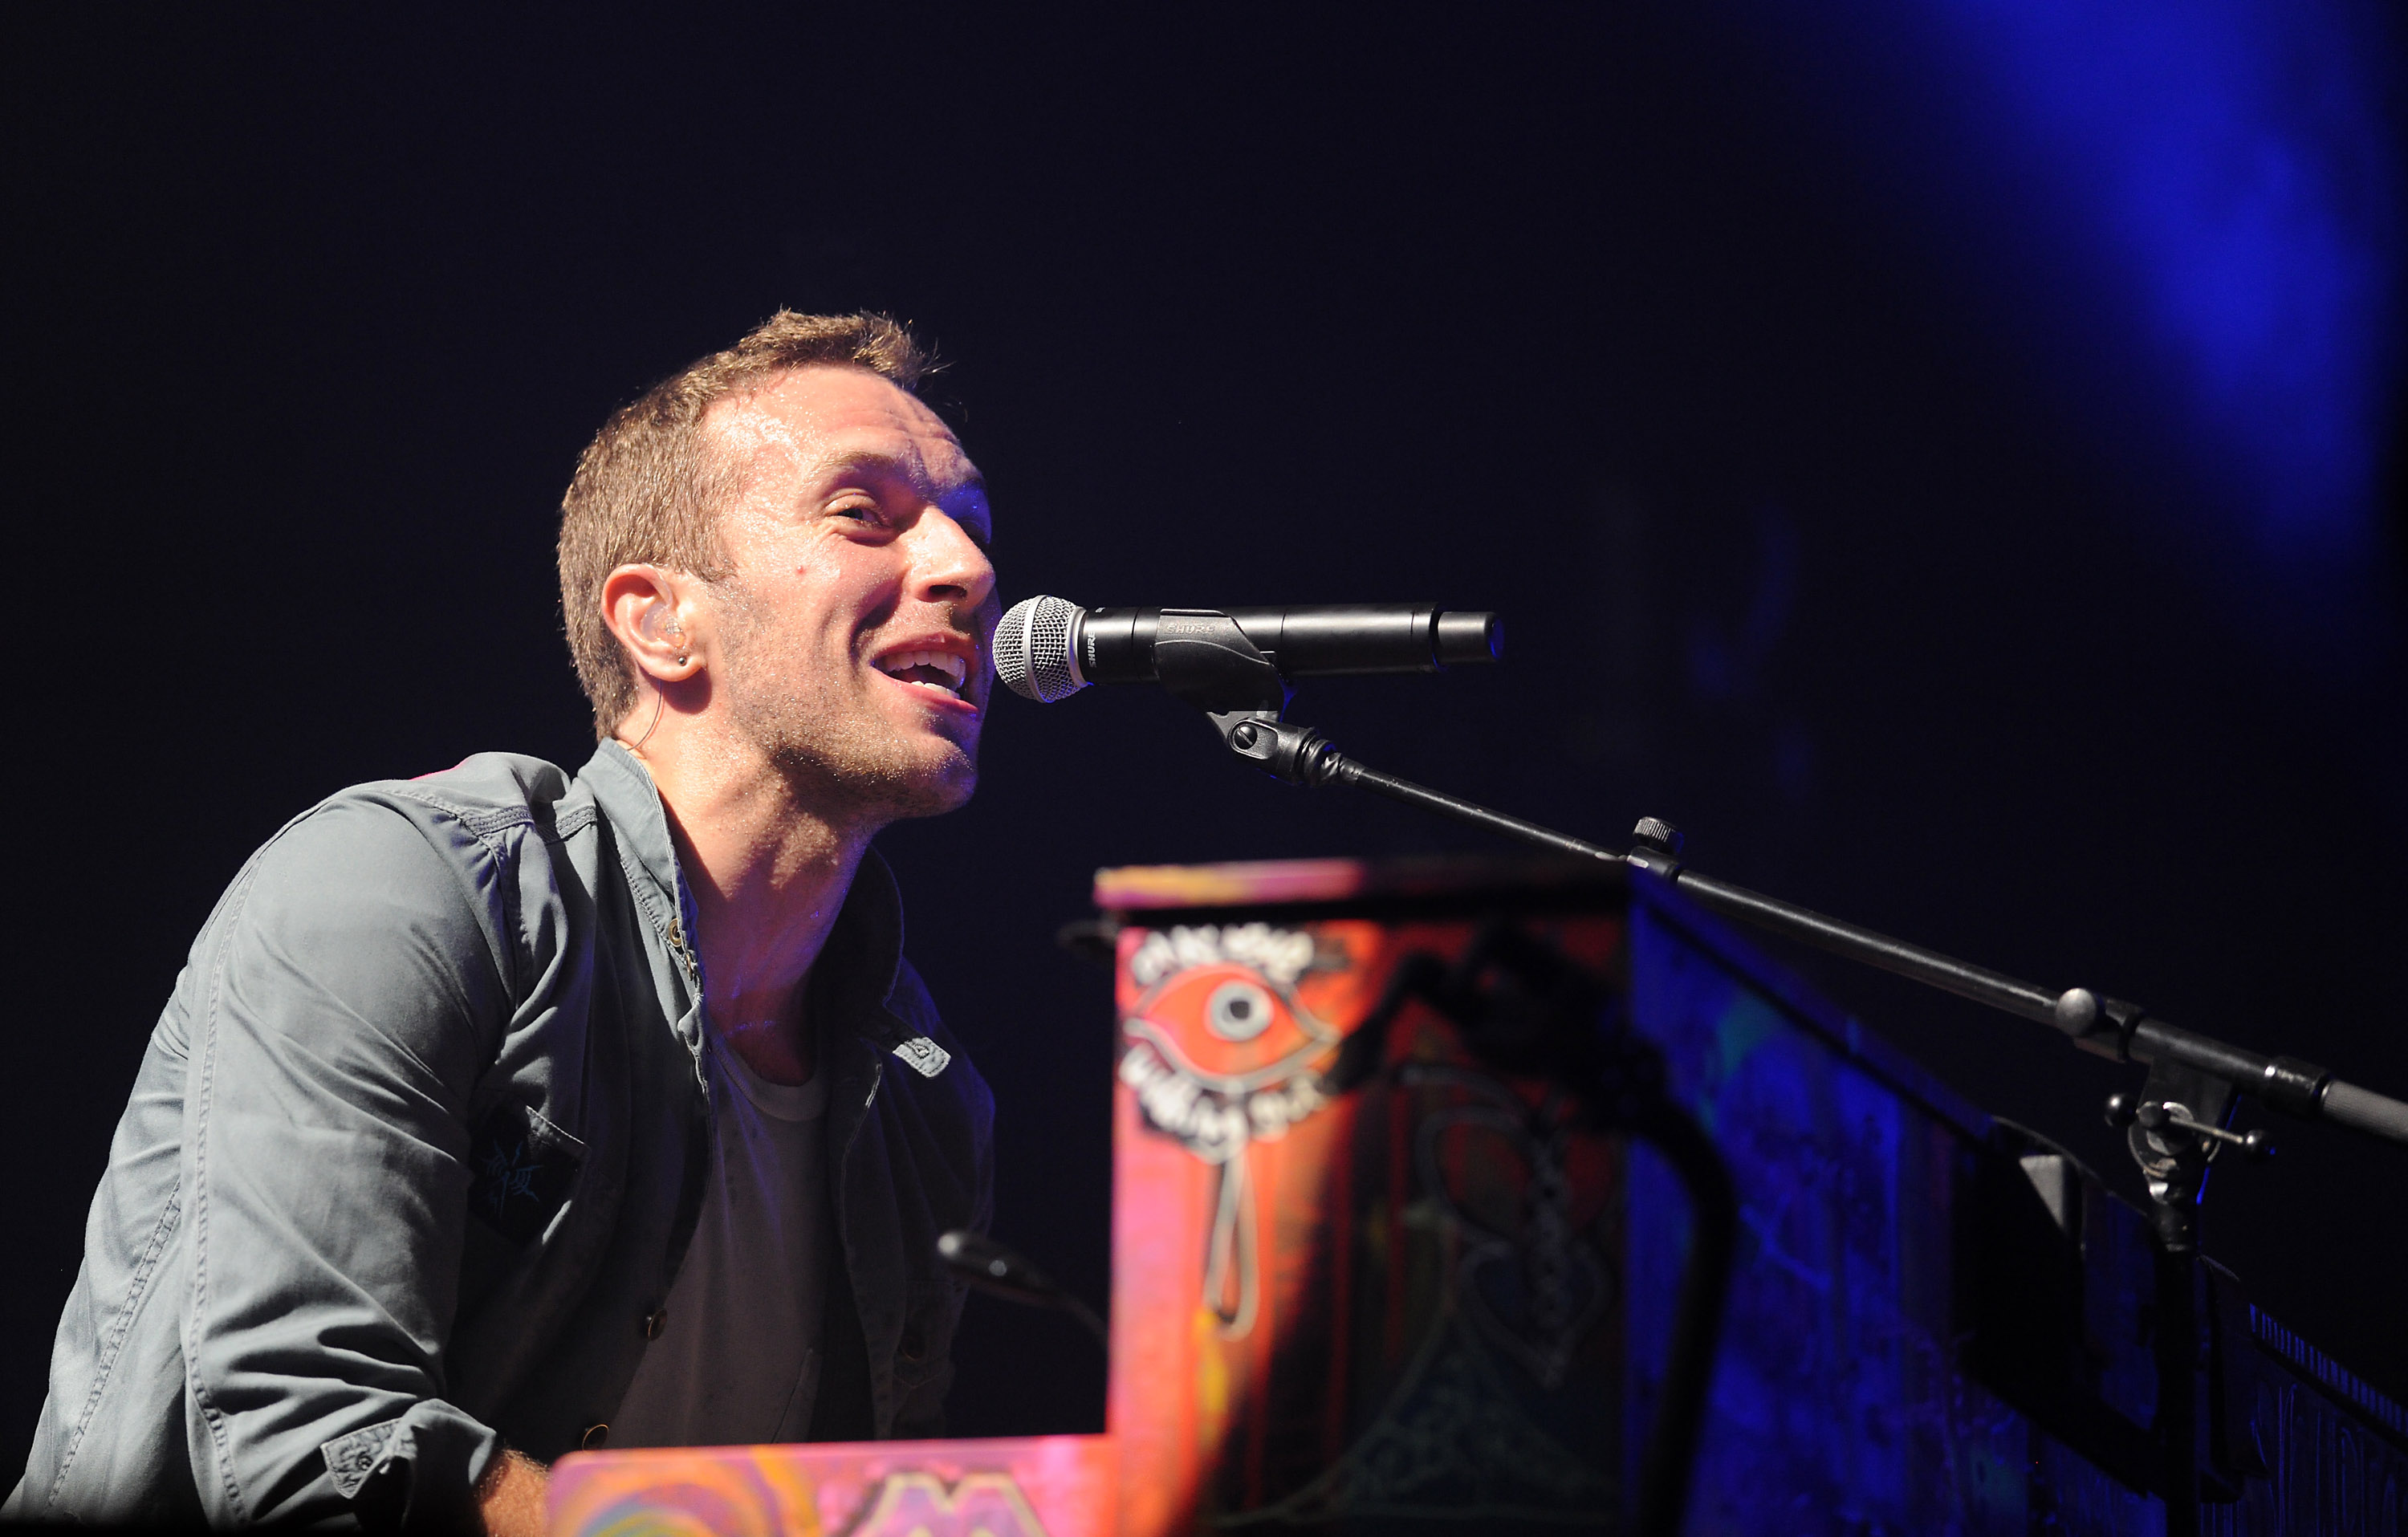 Glastonbury 2011 coldplay